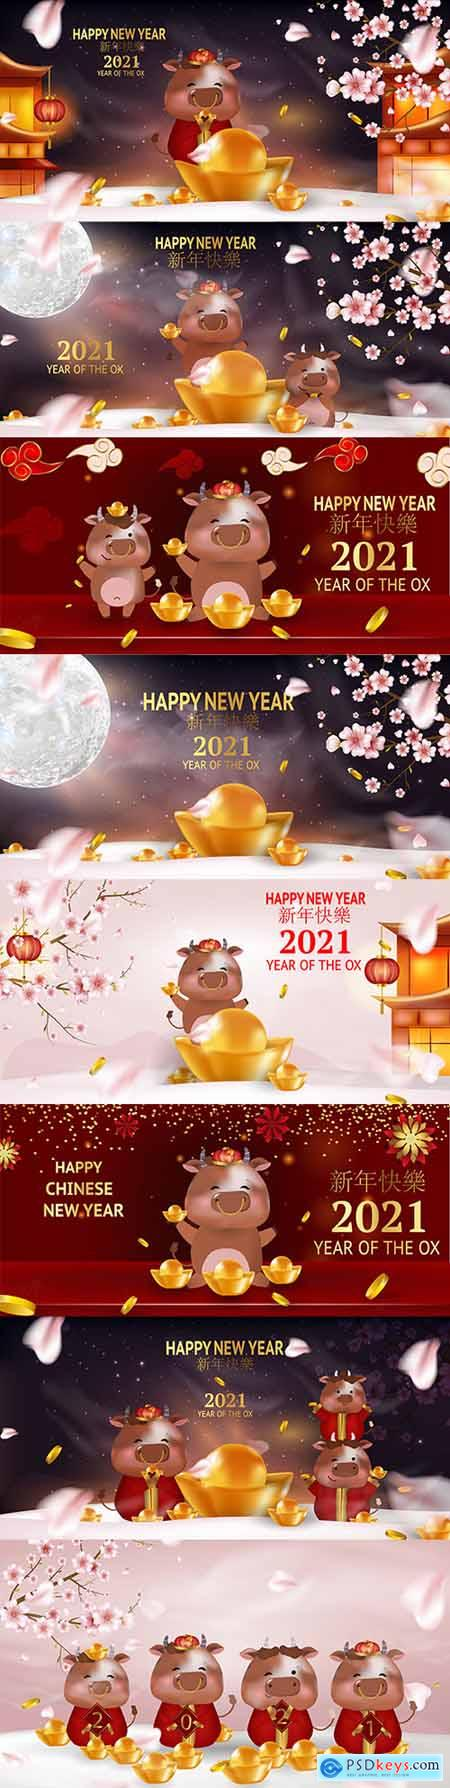 Greeting card for Chinese New Year of Bull 2021